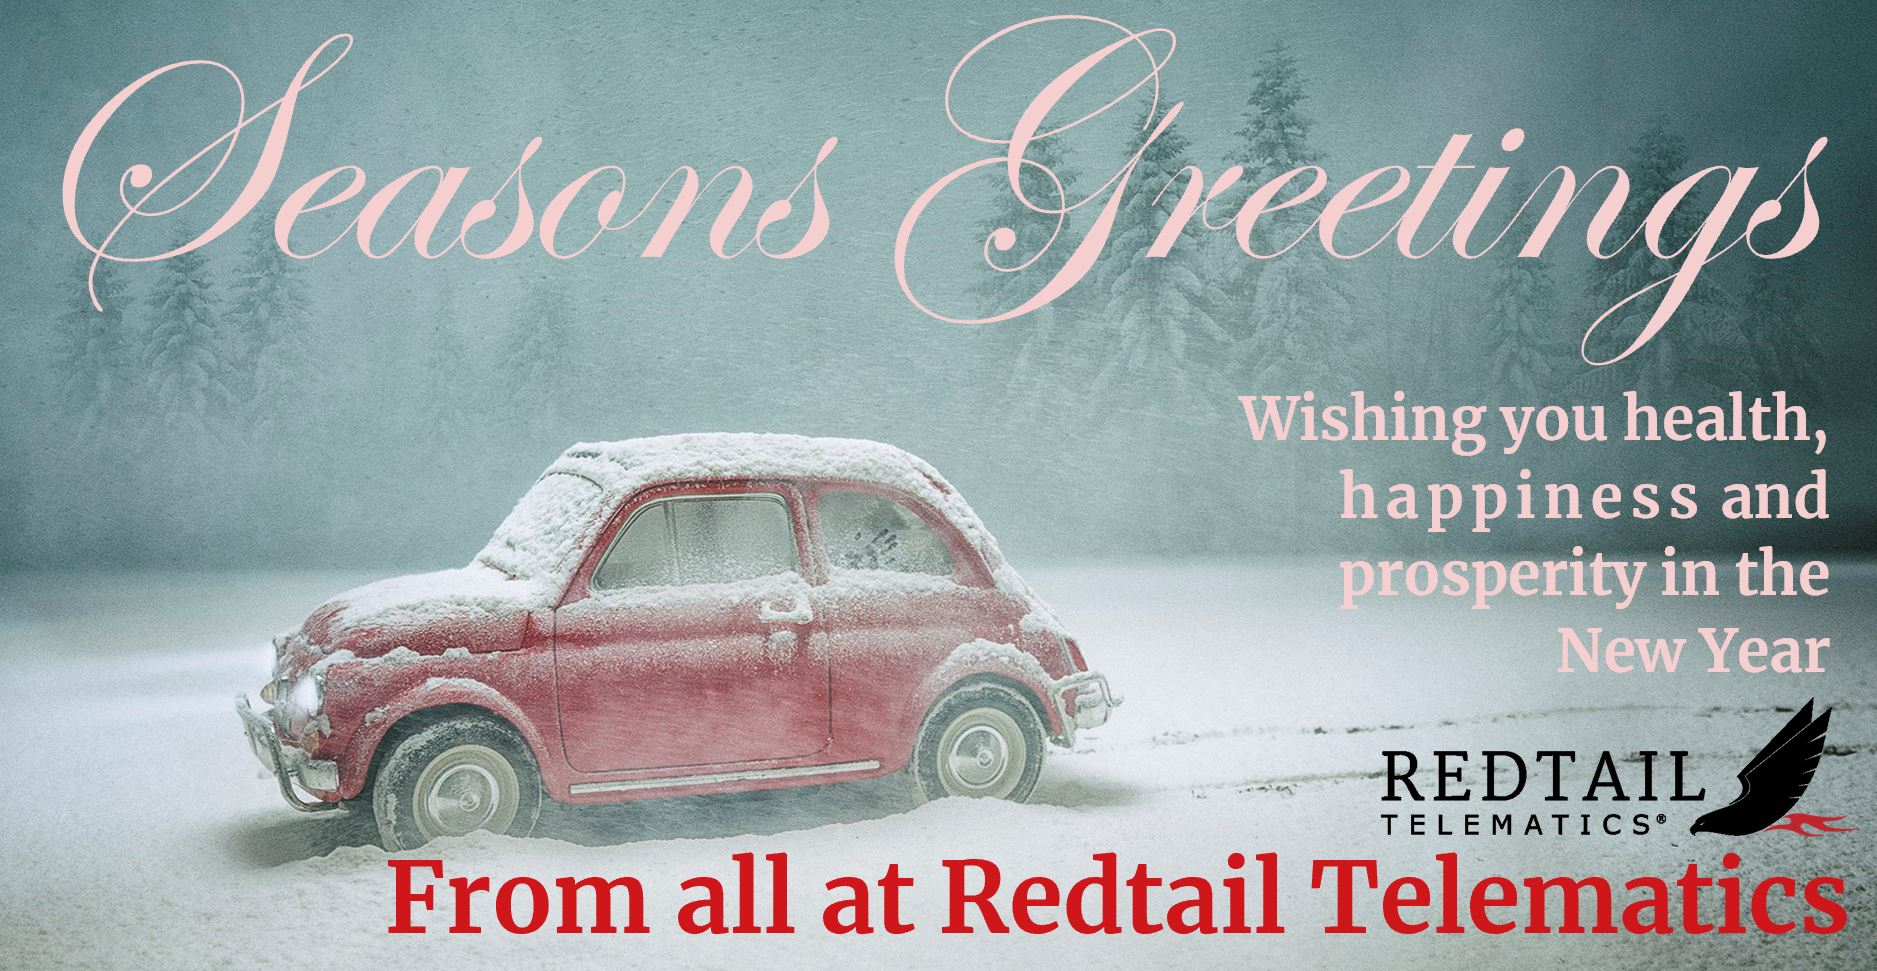 Redtail Telematics Christmas message 2019